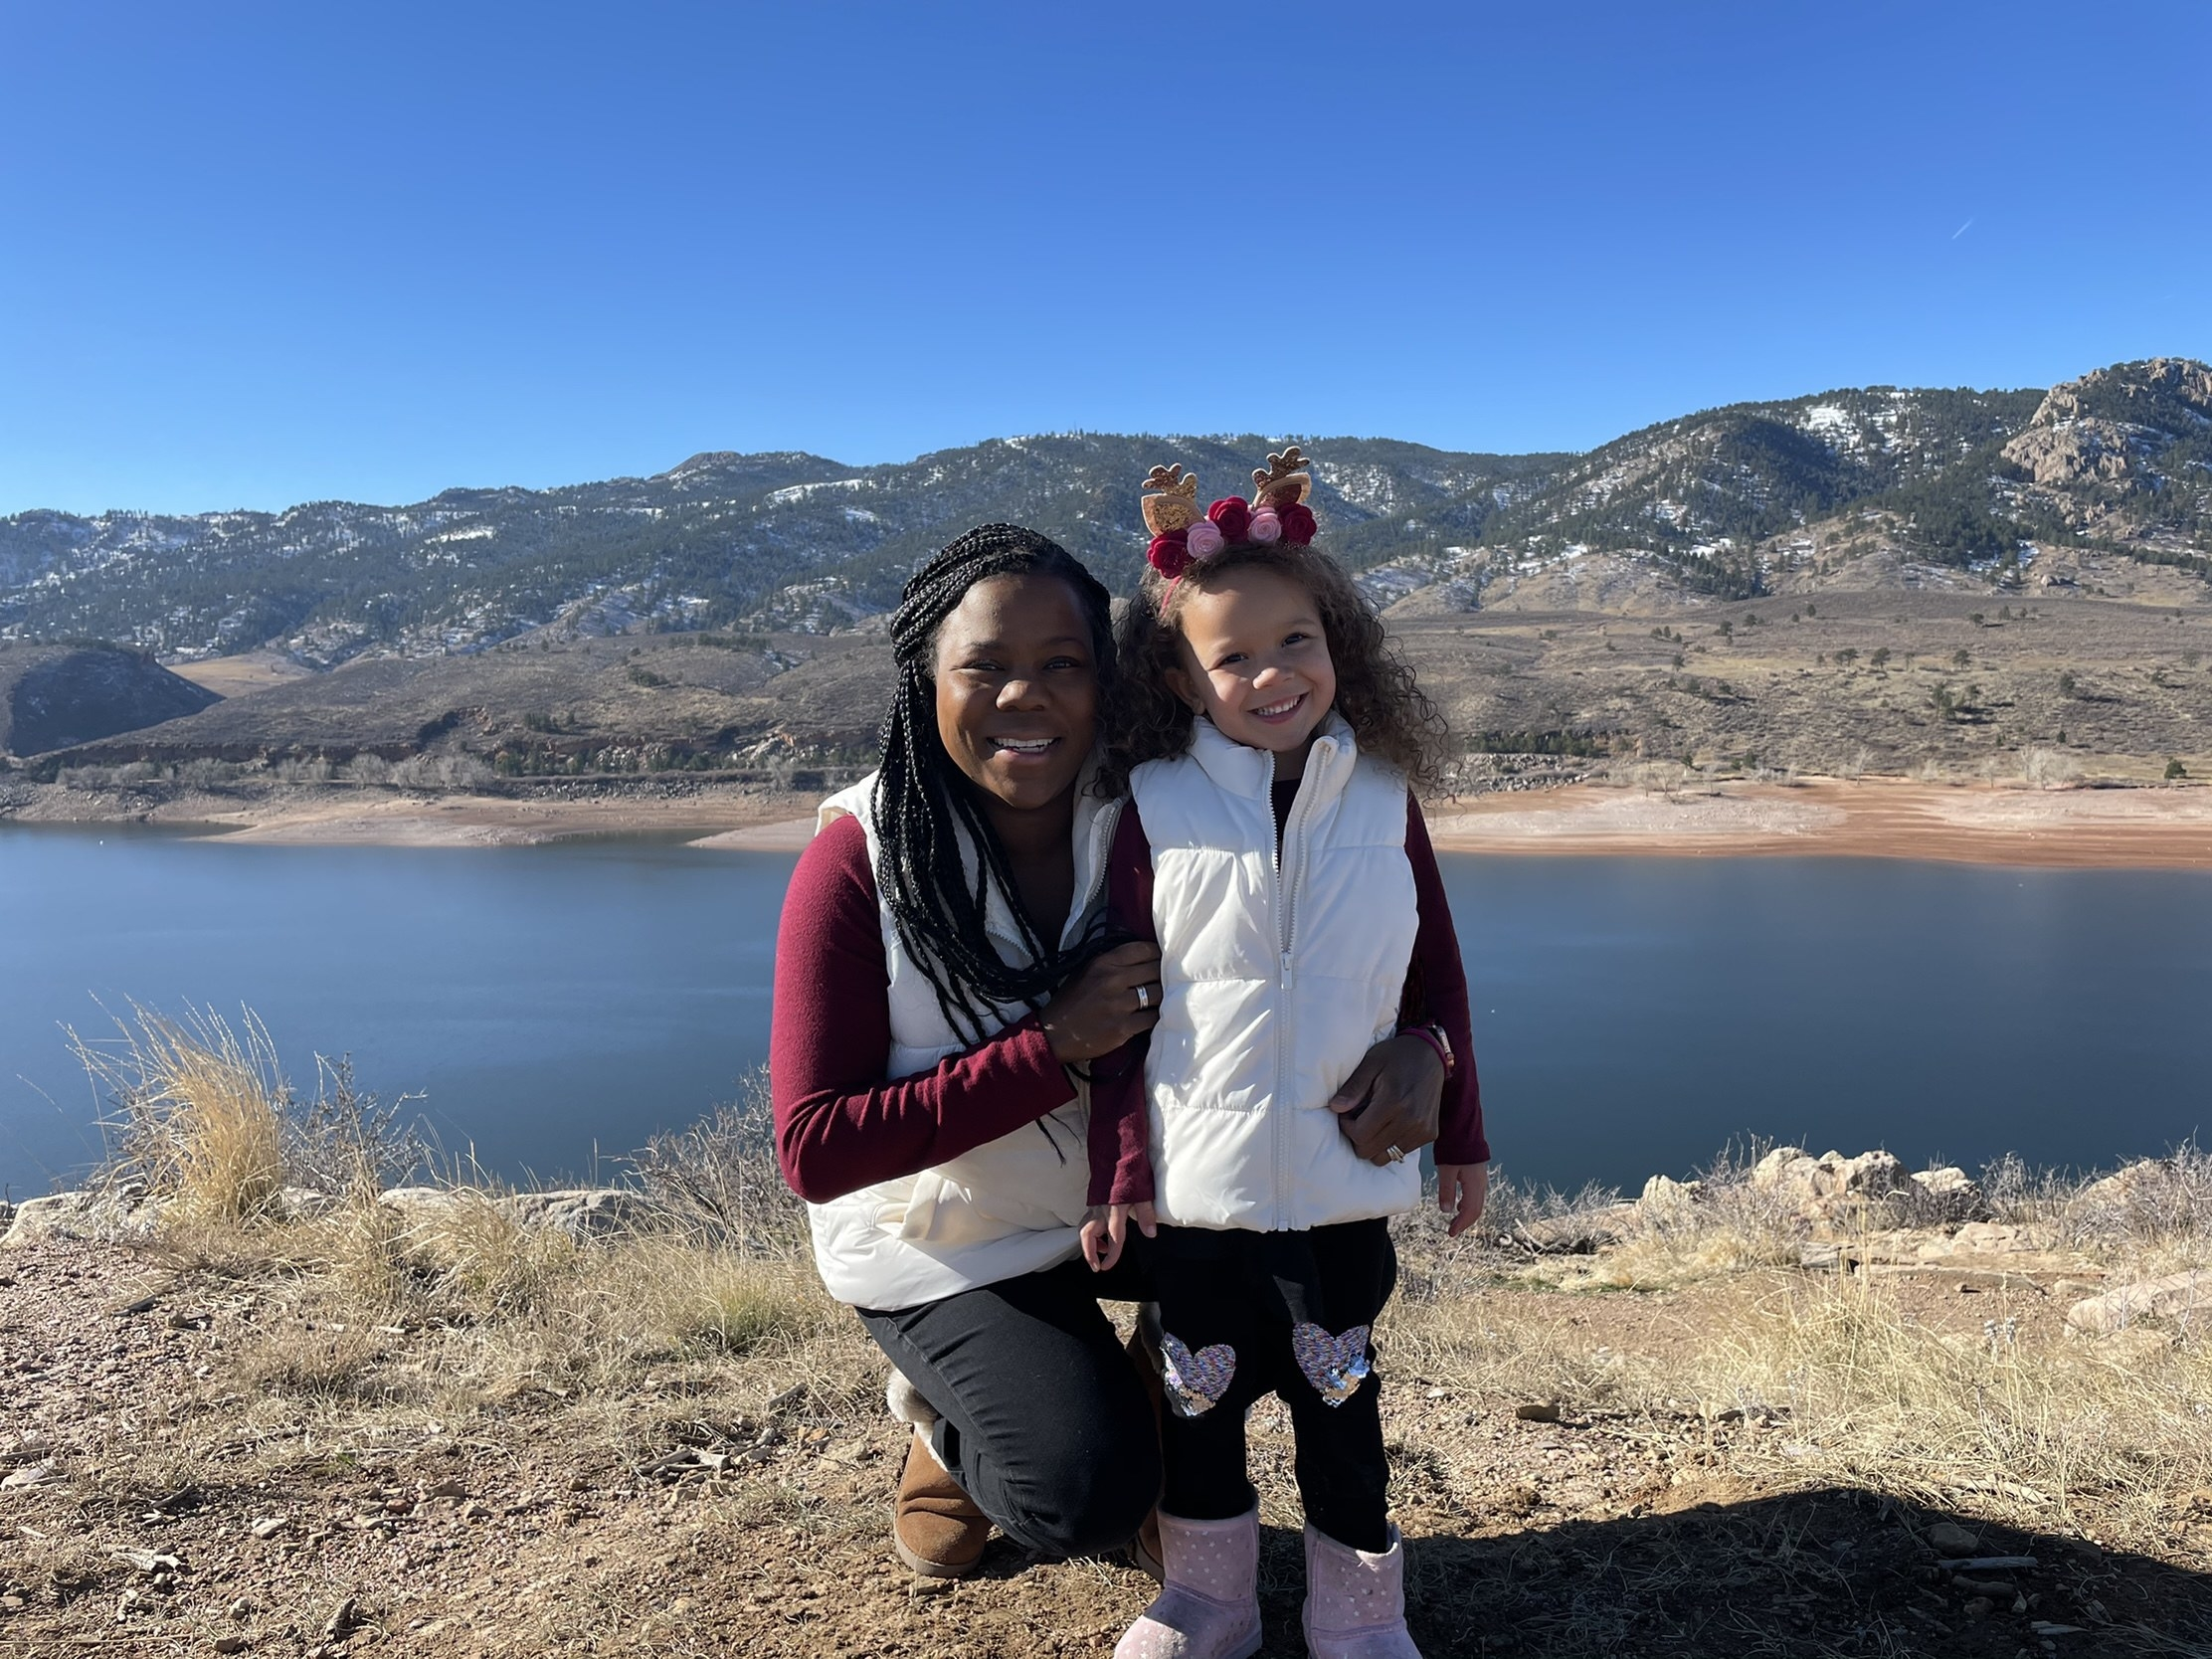 Melissa Burt poses with her young daughter in front of mountains and a lake